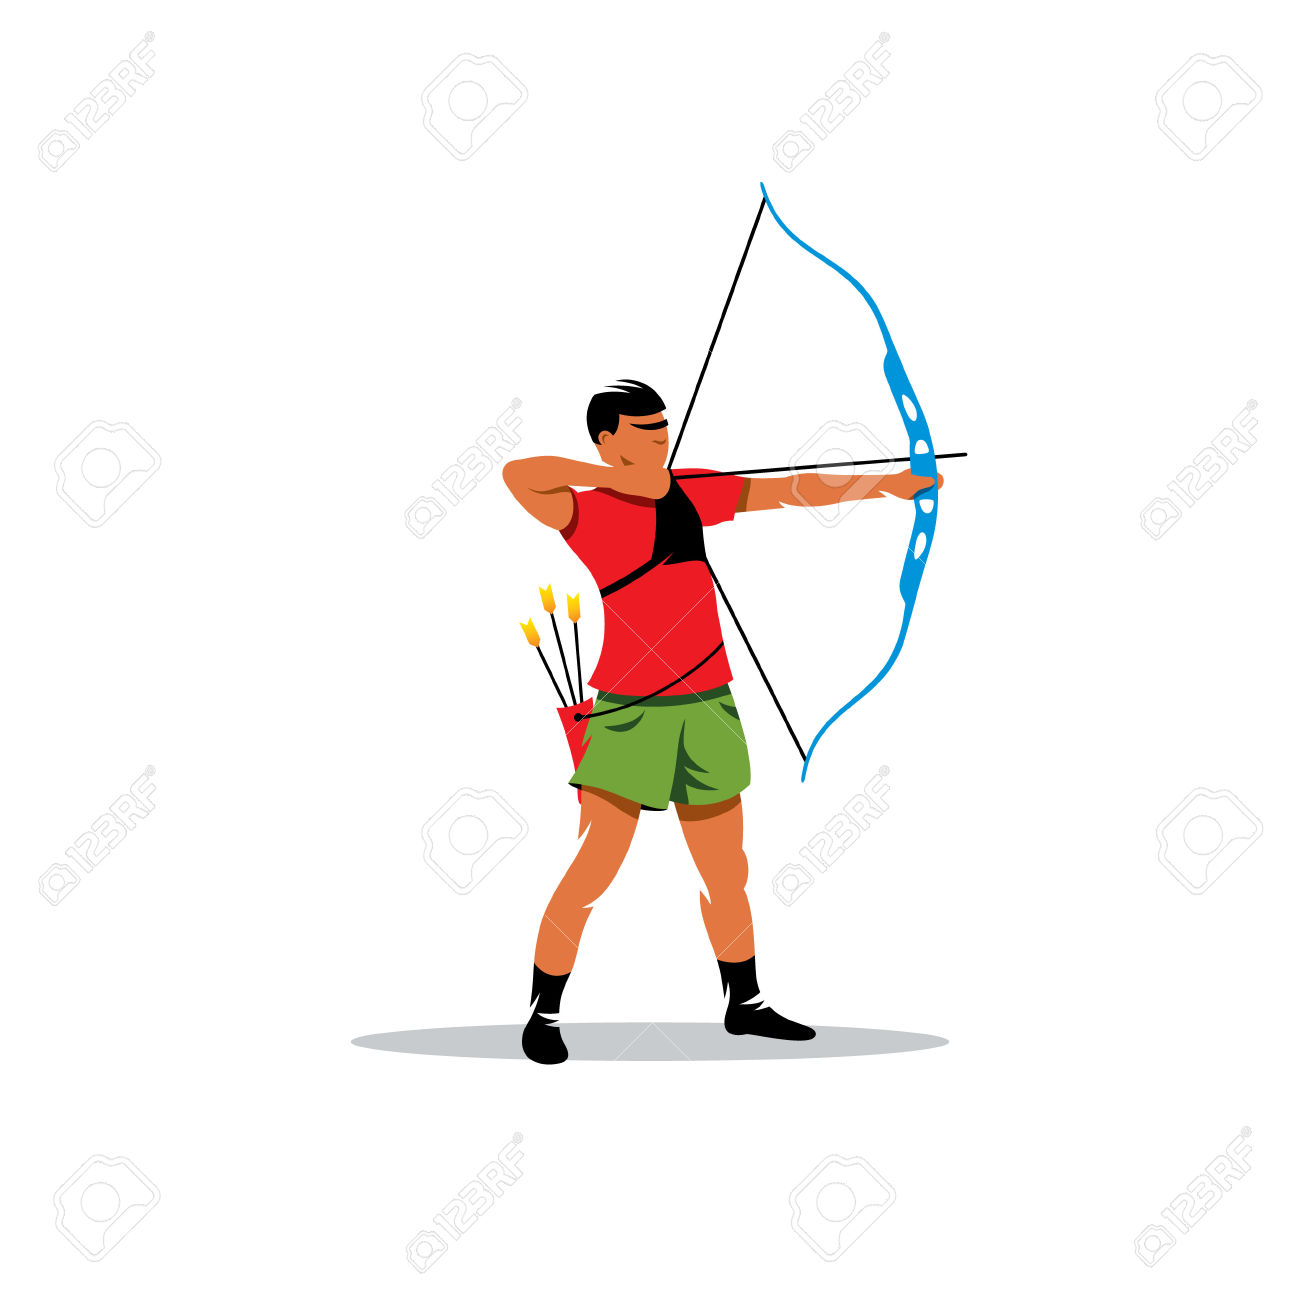 Sports Archery, Archer Pulled The Bowstring Isolated On White.